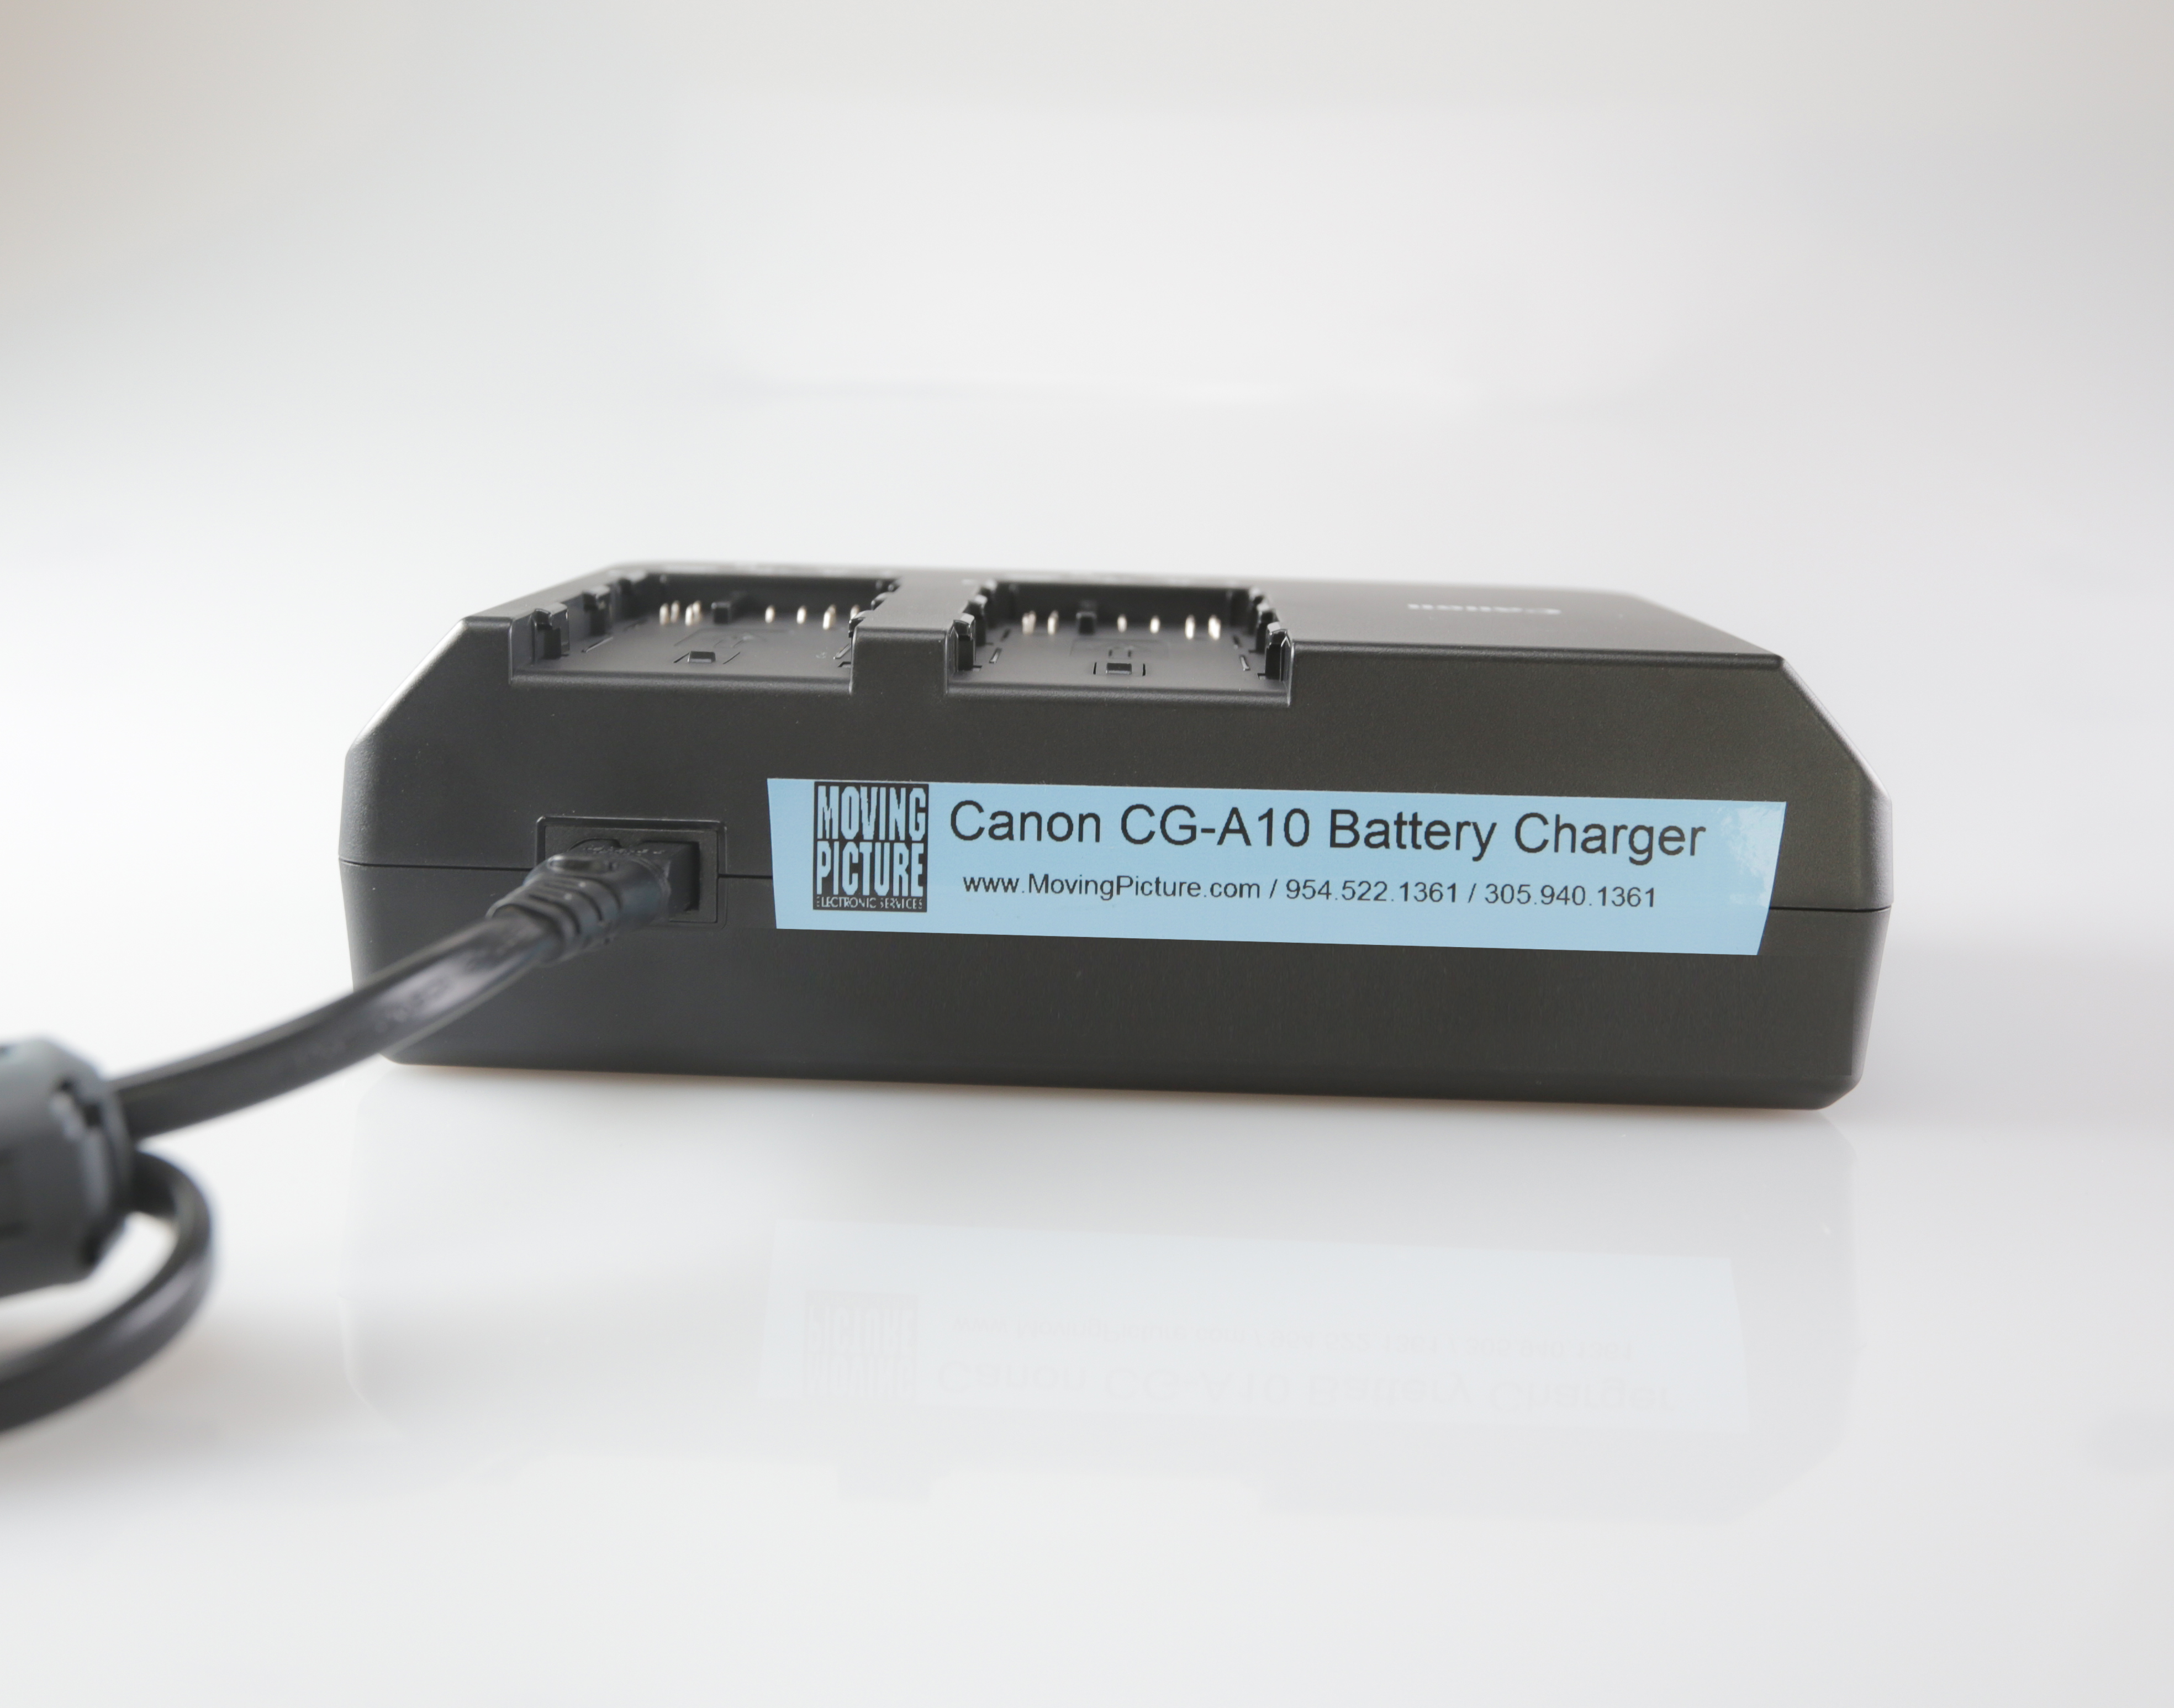 CG-A10 Battery Charger